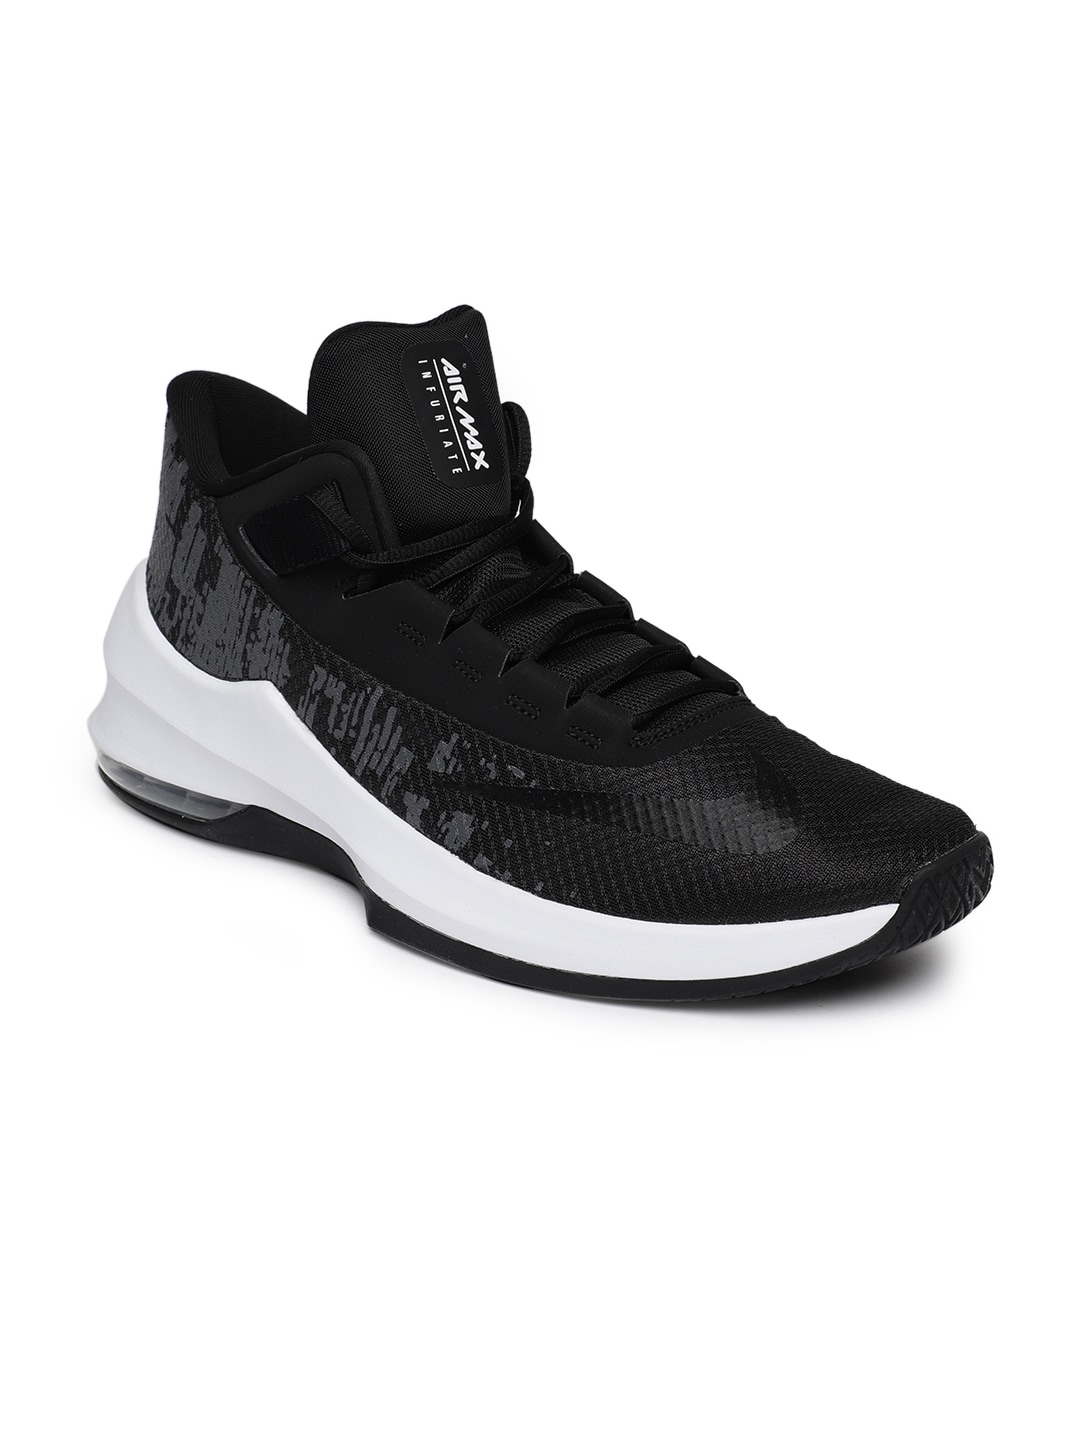 timeless design 6401e 2c4b6 Nike Shoes - Buy Nike Shoes for Men, Women   Kids Online   Myntra